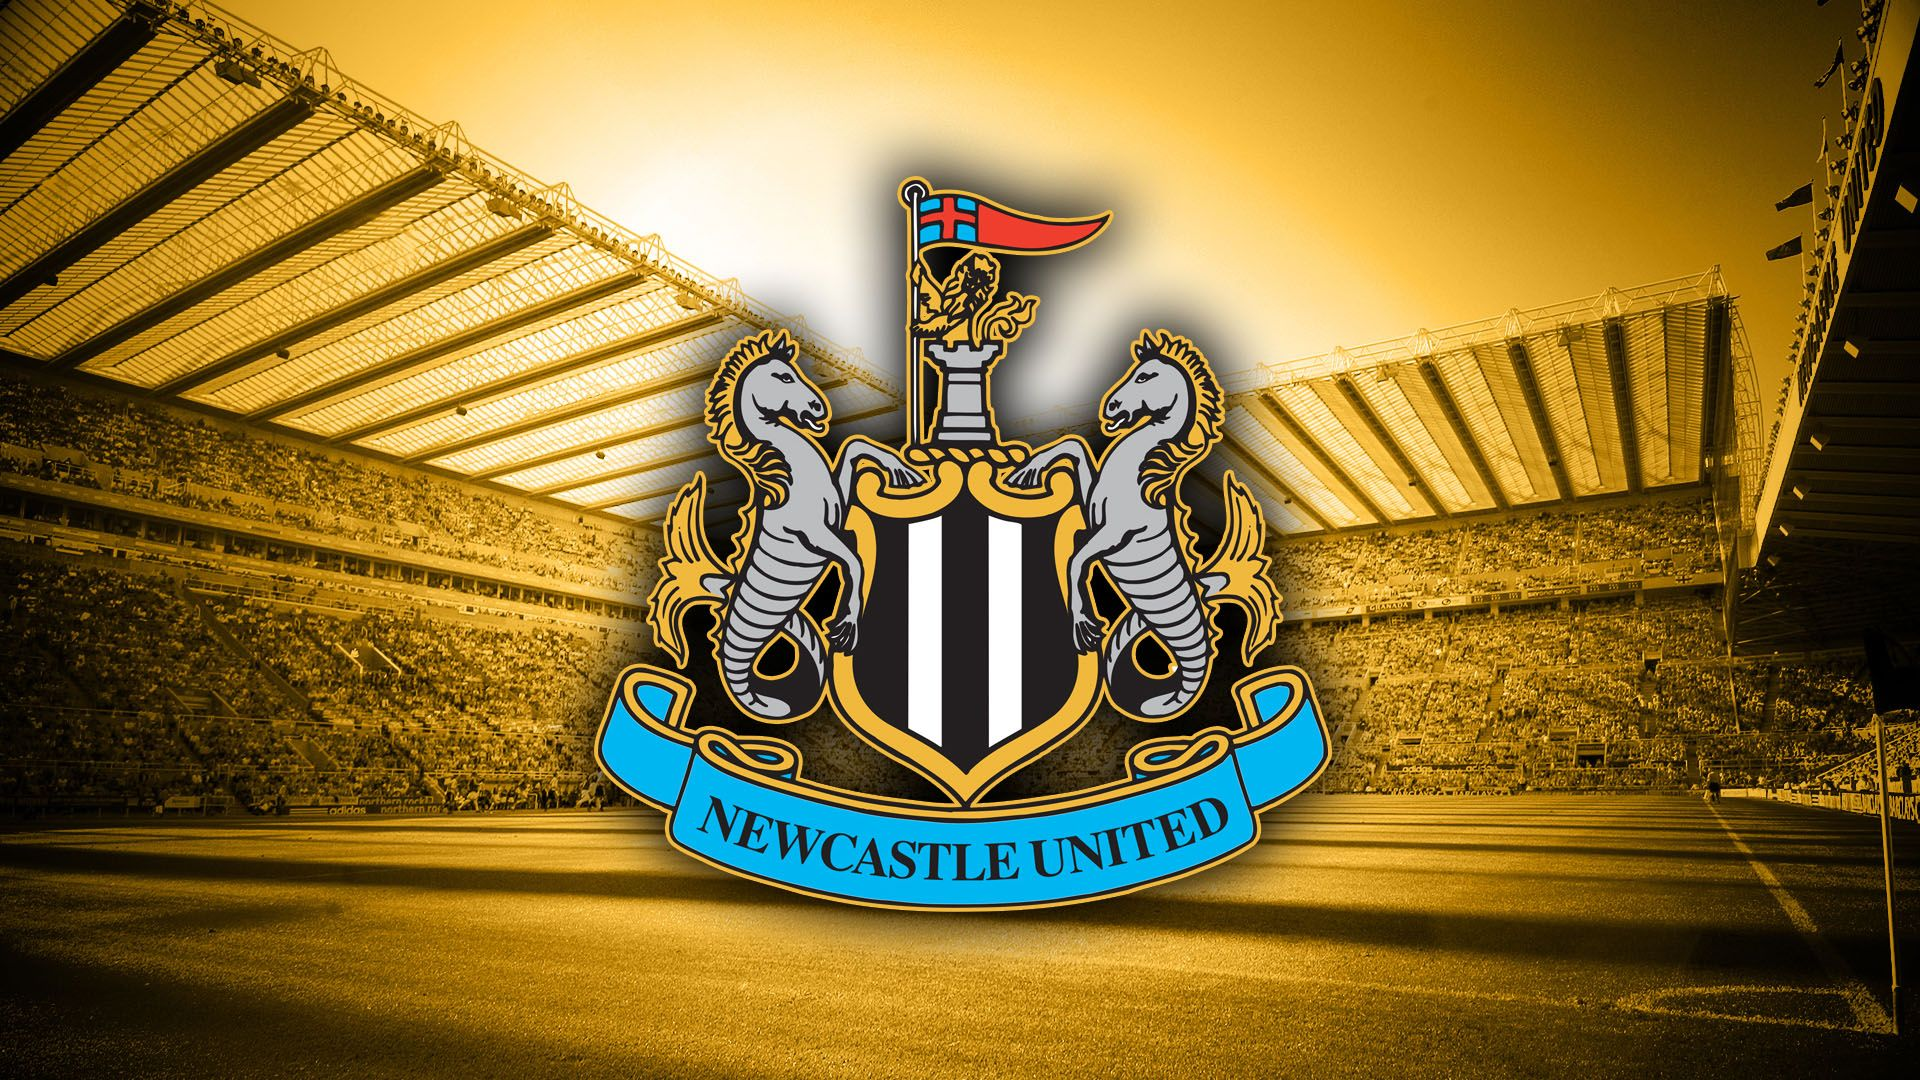 Download Newcastle United FC Wallpaper APK 1.0 - Only in